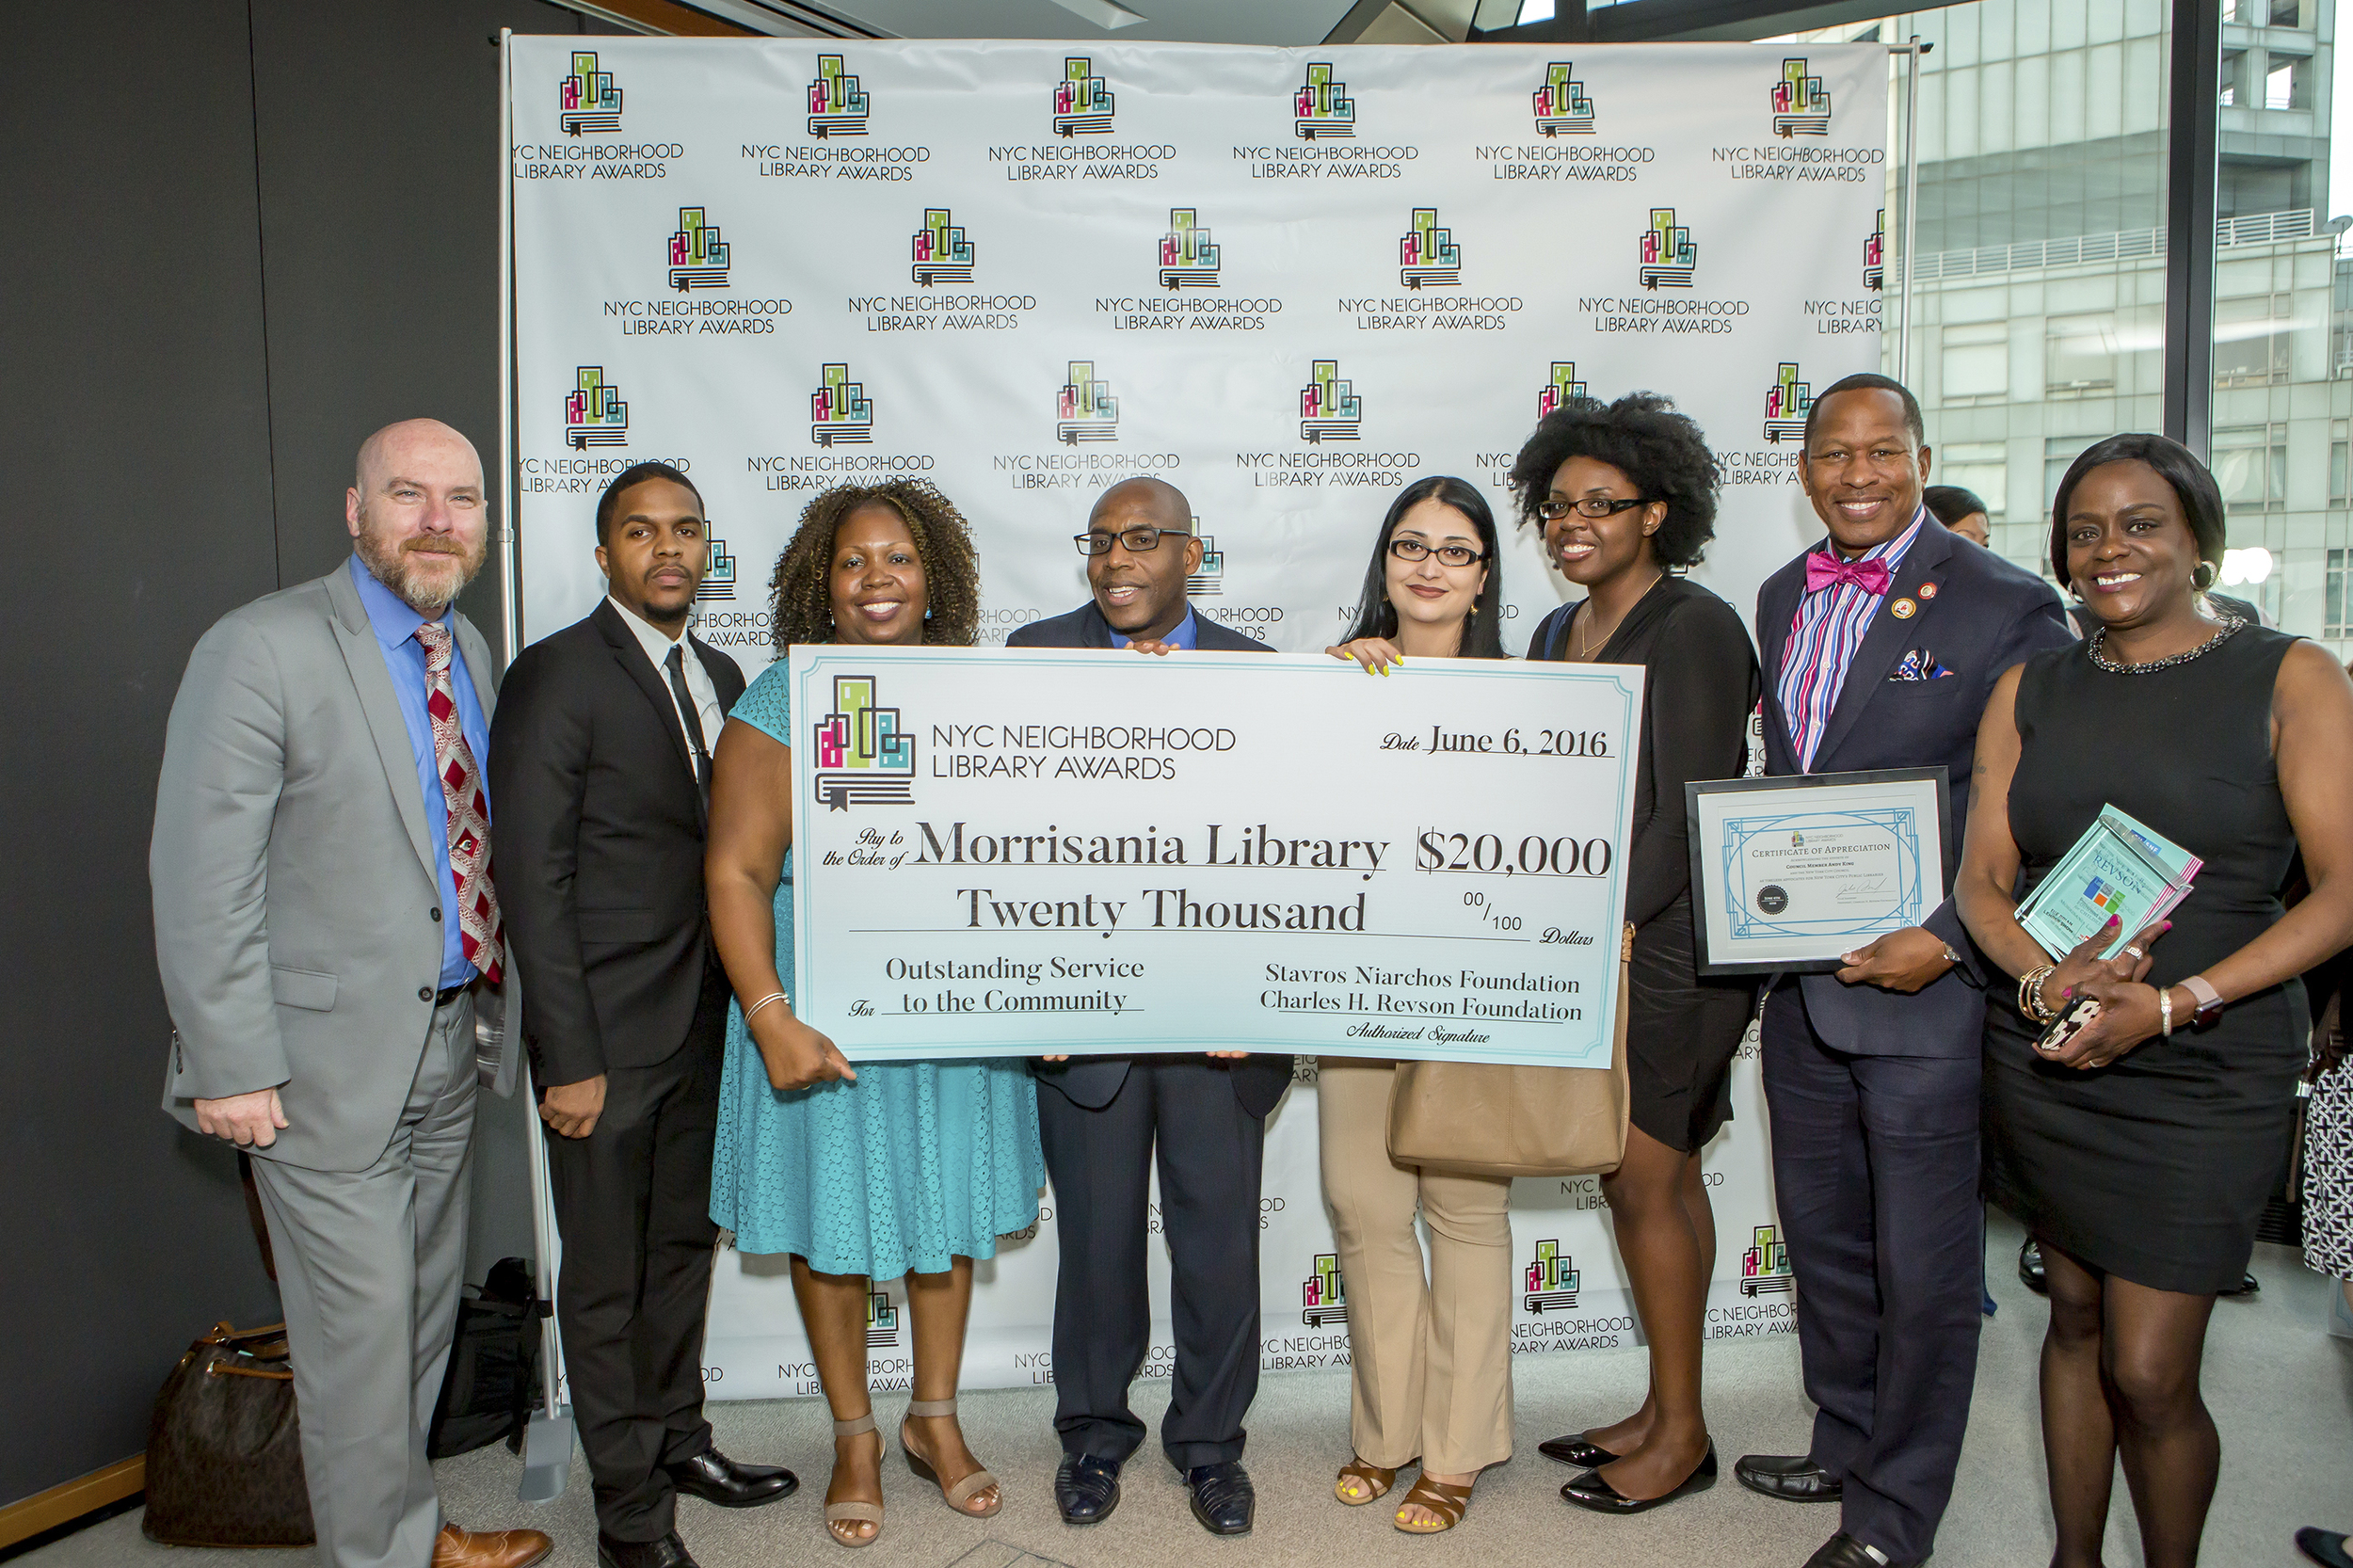 Staff of the Morrisania Library and Council Member Andy King